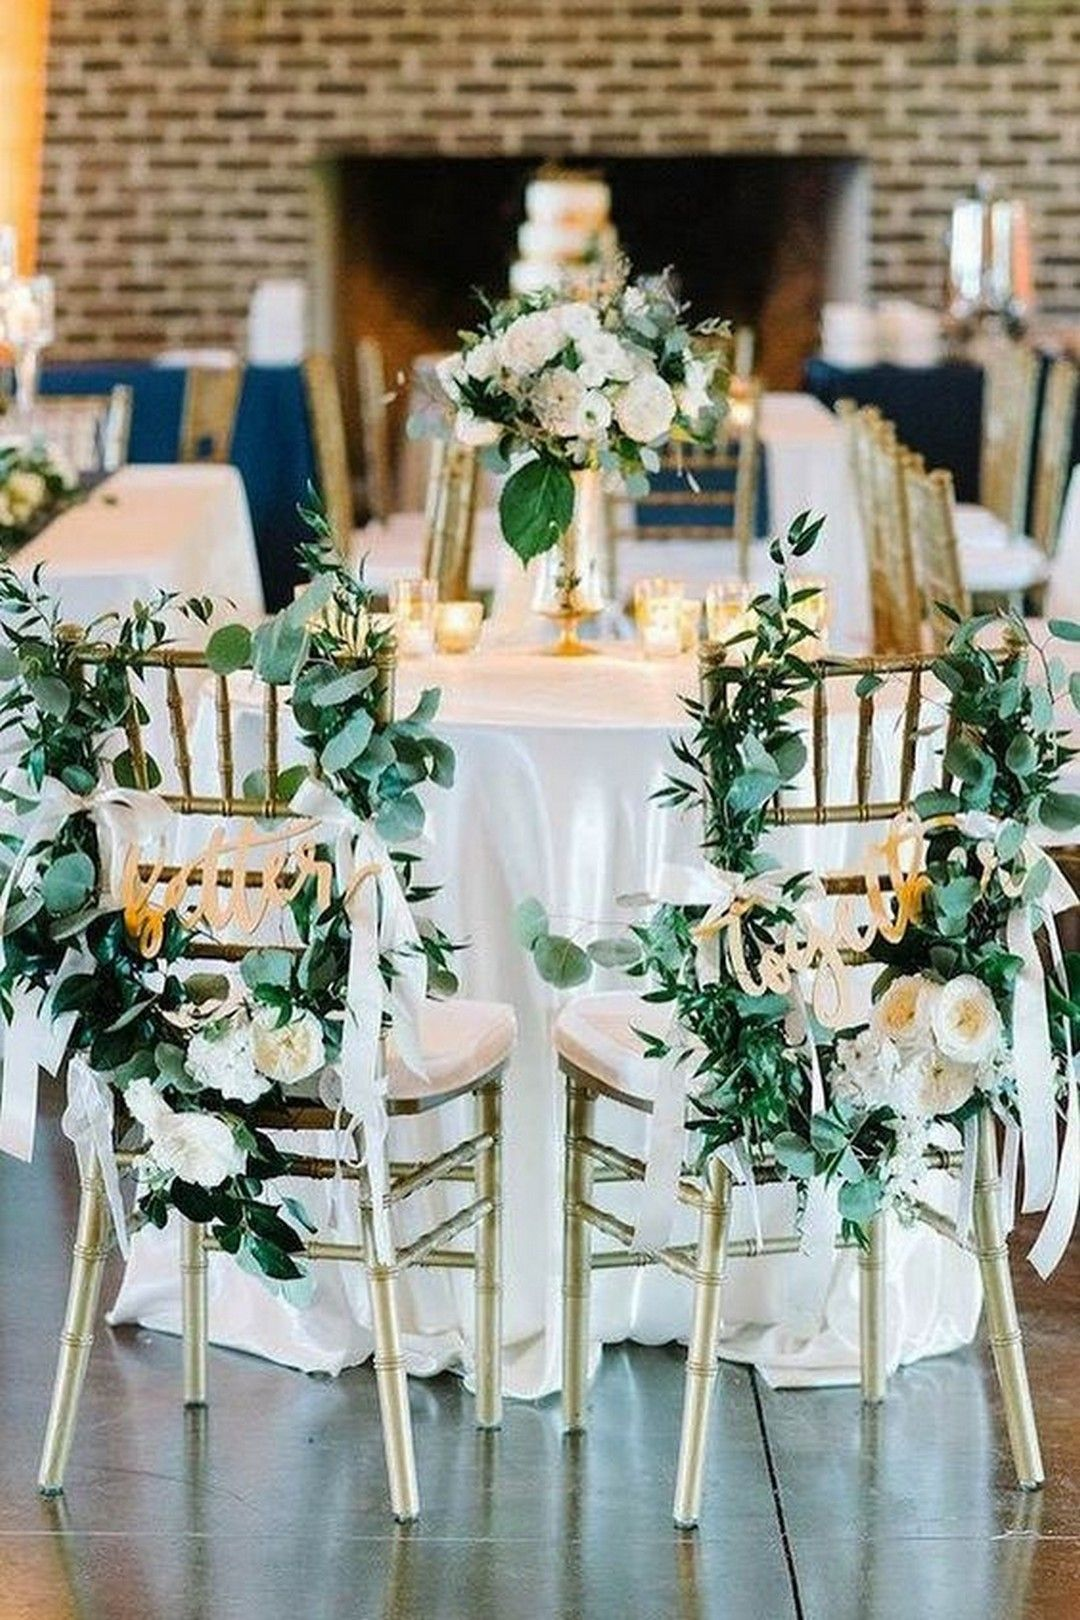 Rustic Wedding Decoration Ideas That You Can Manage In Your Special Day Goodnewsarchitecture Greenery Wedding Decor Greenery Wedding French Wedding Decor